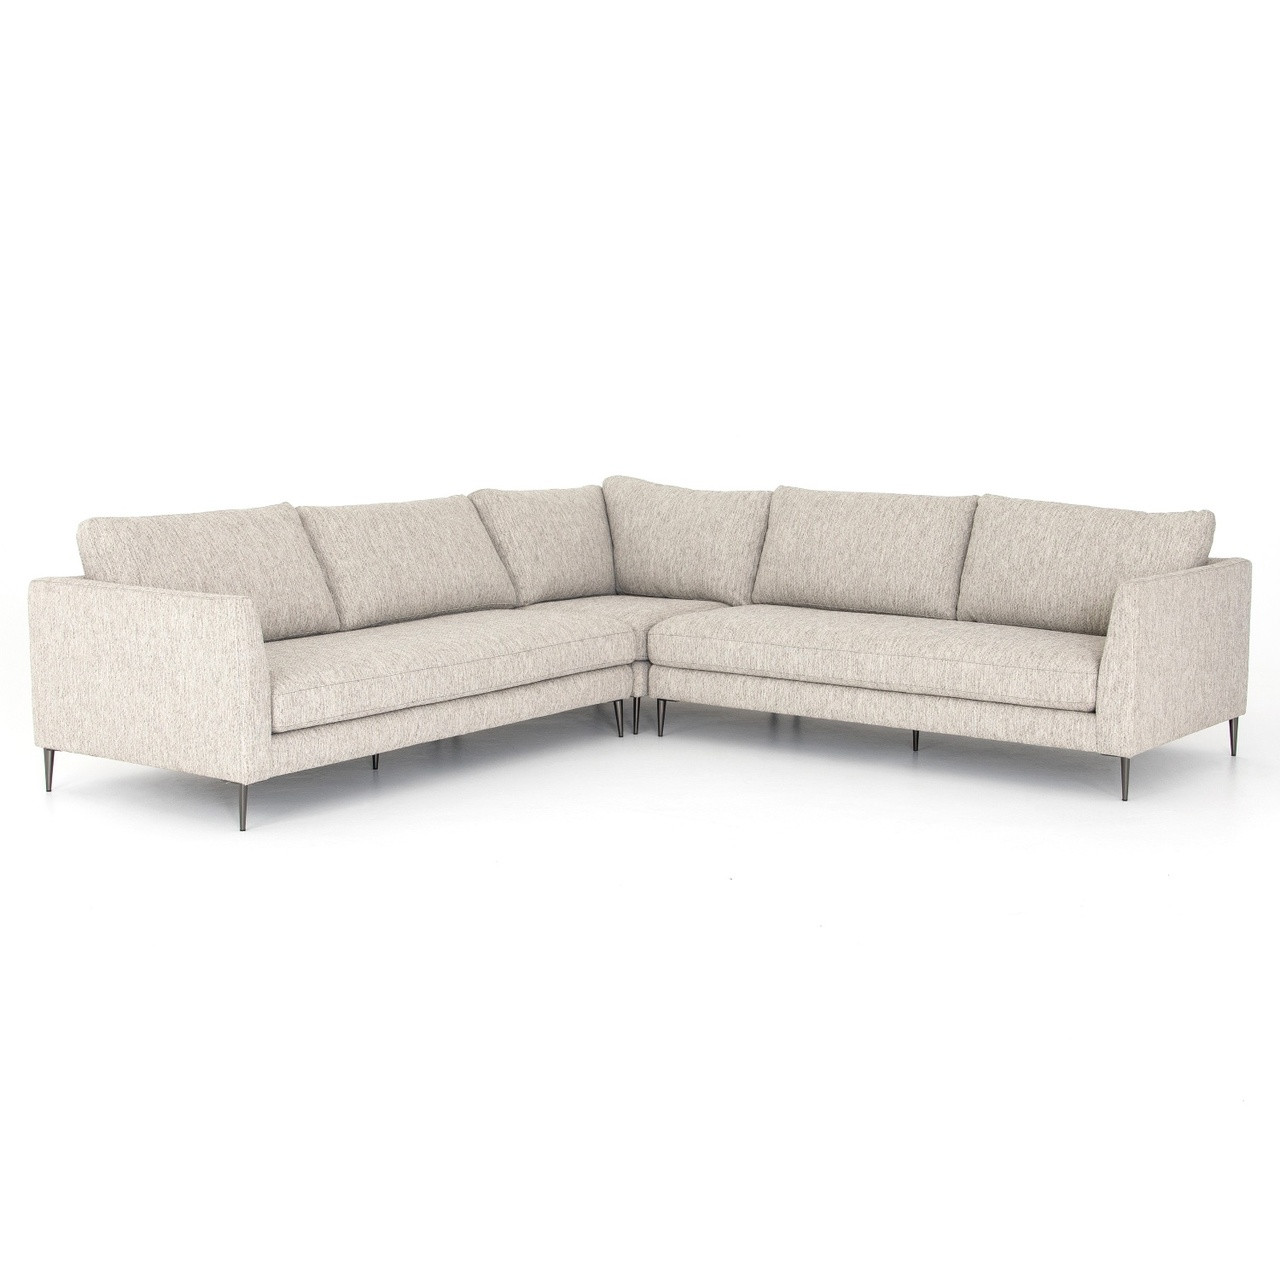 Made Sofa Reviews Kailor Modern Neutral Fabric Corner Sectional Sofa